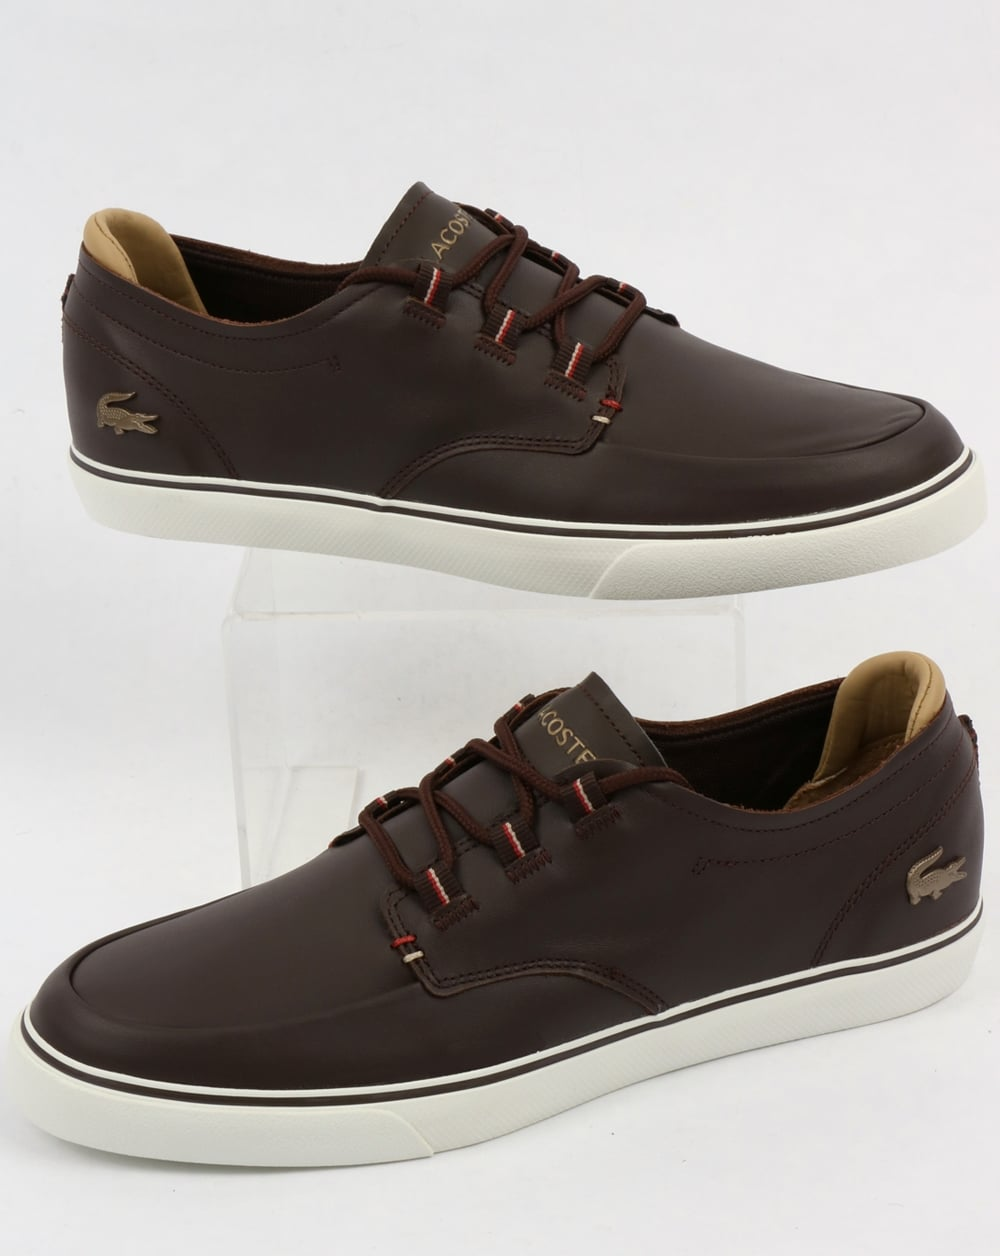 6463c667194e Lacoste Lacoste Esparre Deck Shoe Brown Light Tan